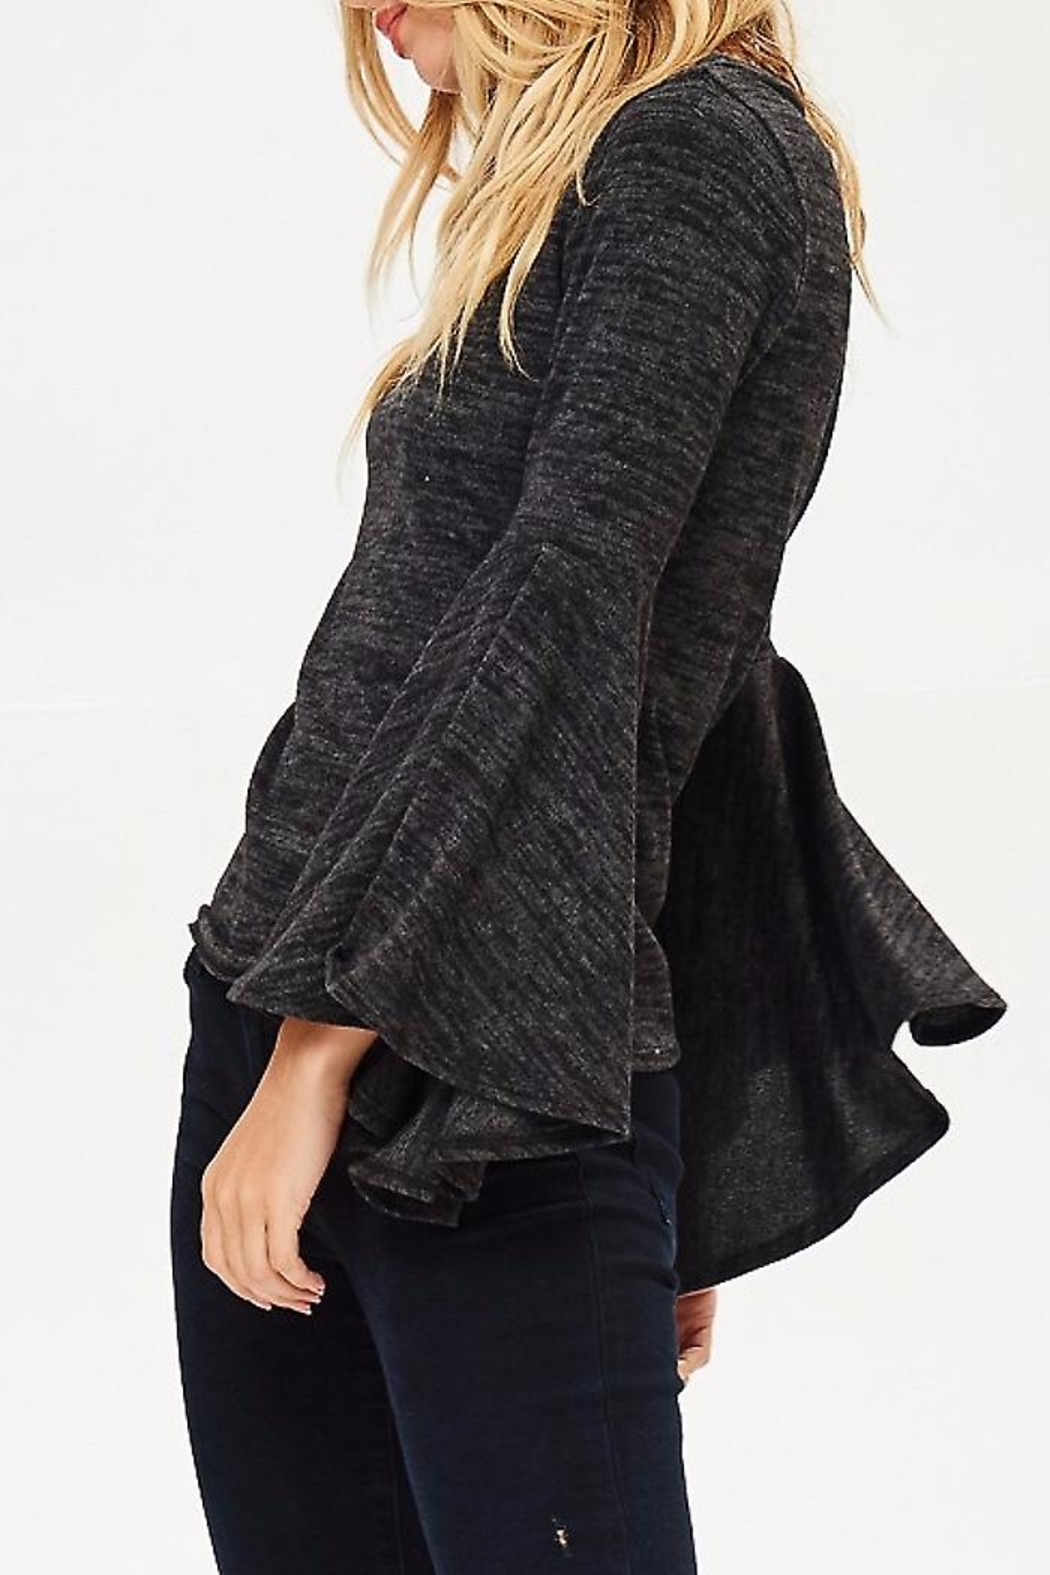 People Outfitter Bell Sleeve Sweater - Front Full Image